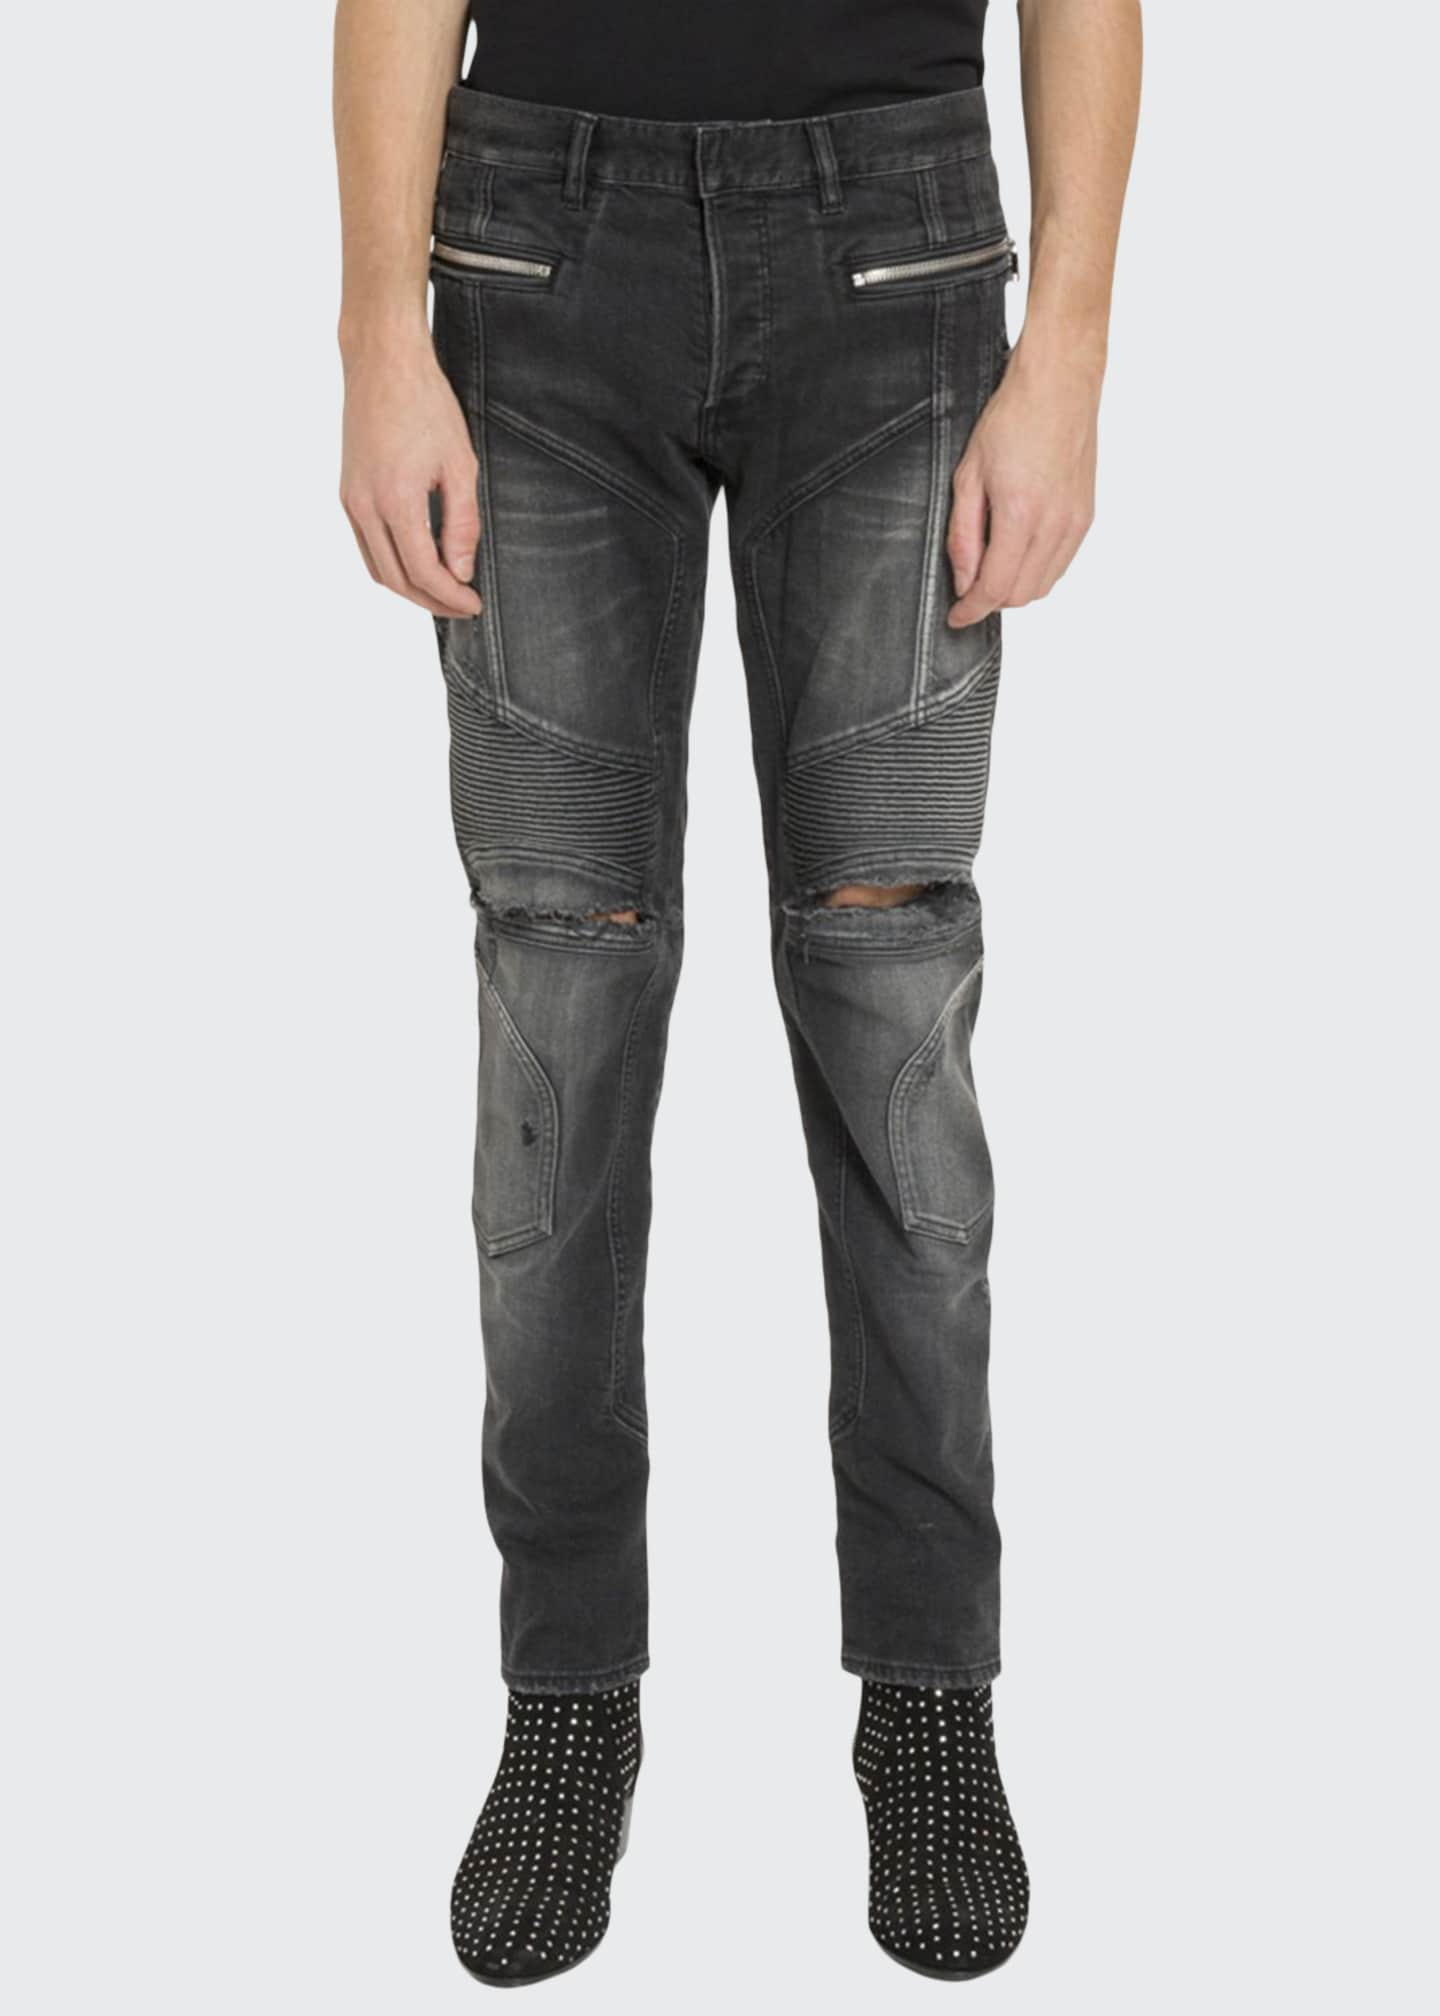 Balmain Men's Slim Ribbed Zip-Pocket Jeans